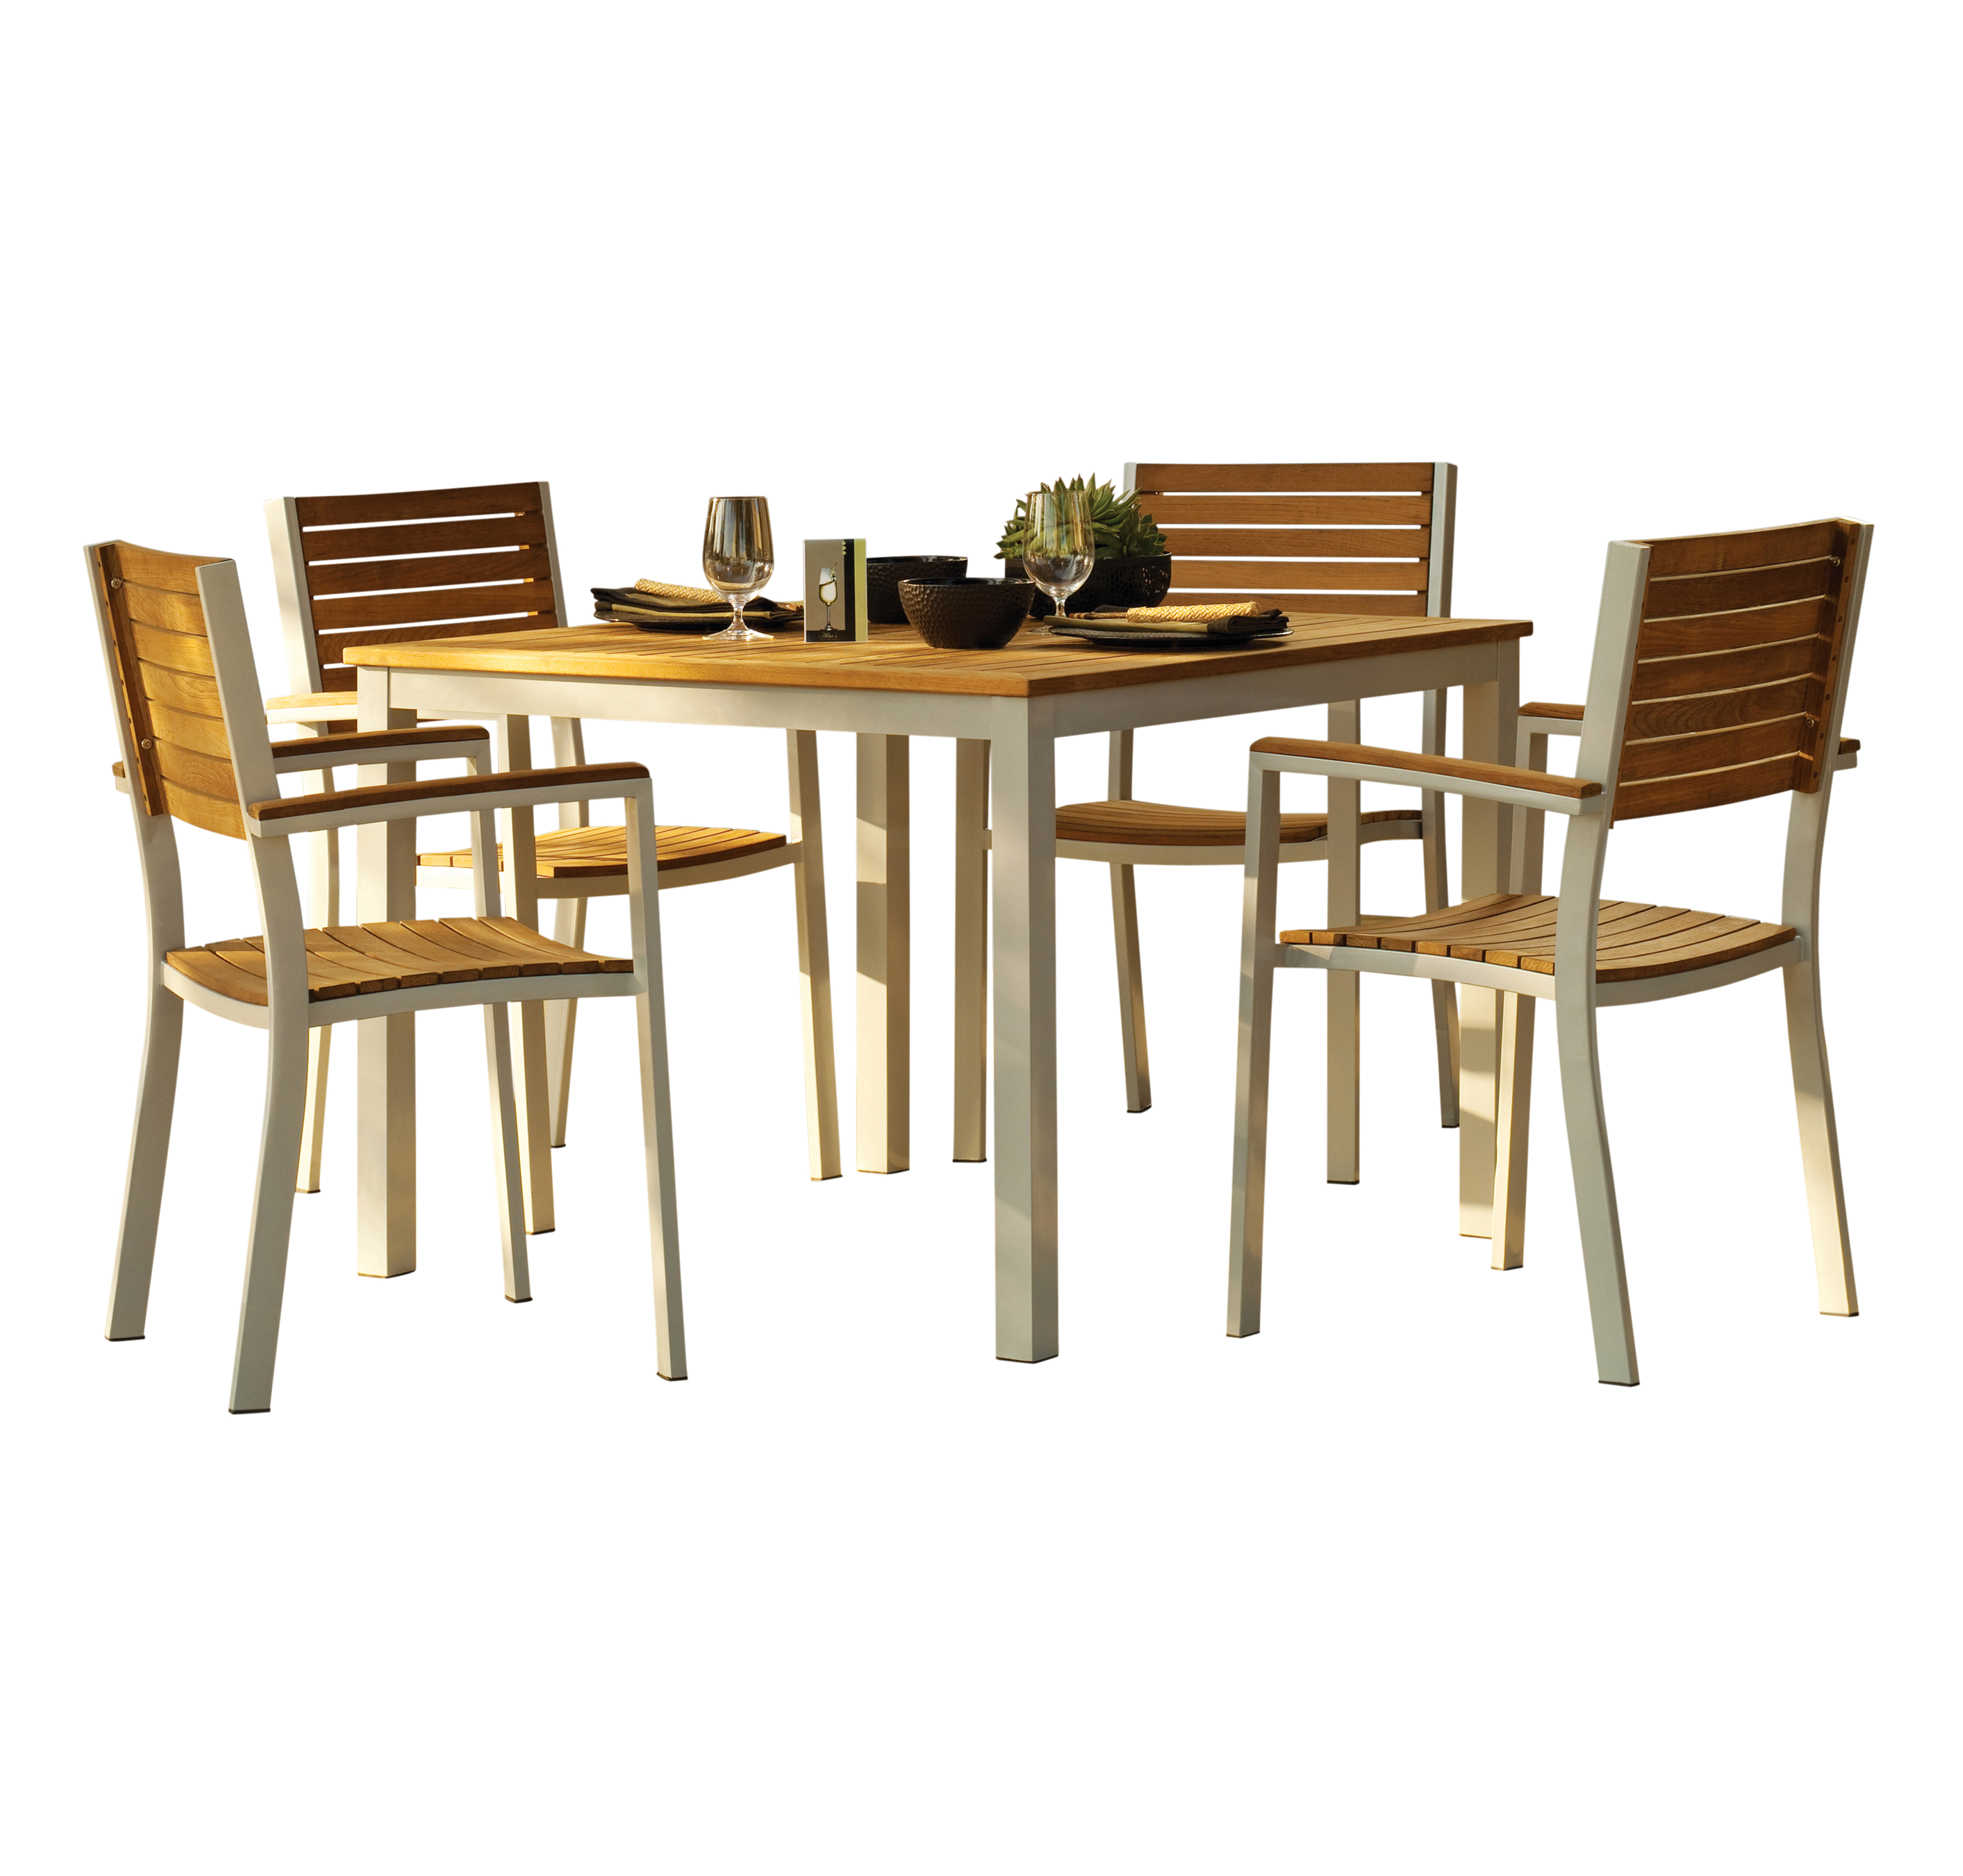 Oxford Garden Travira Commercial Grade 5-Piece Dining Set with Teak Table Top PartNumber: 07148402000P KsnValue: 07148402000 MfgPartNumber: 5040